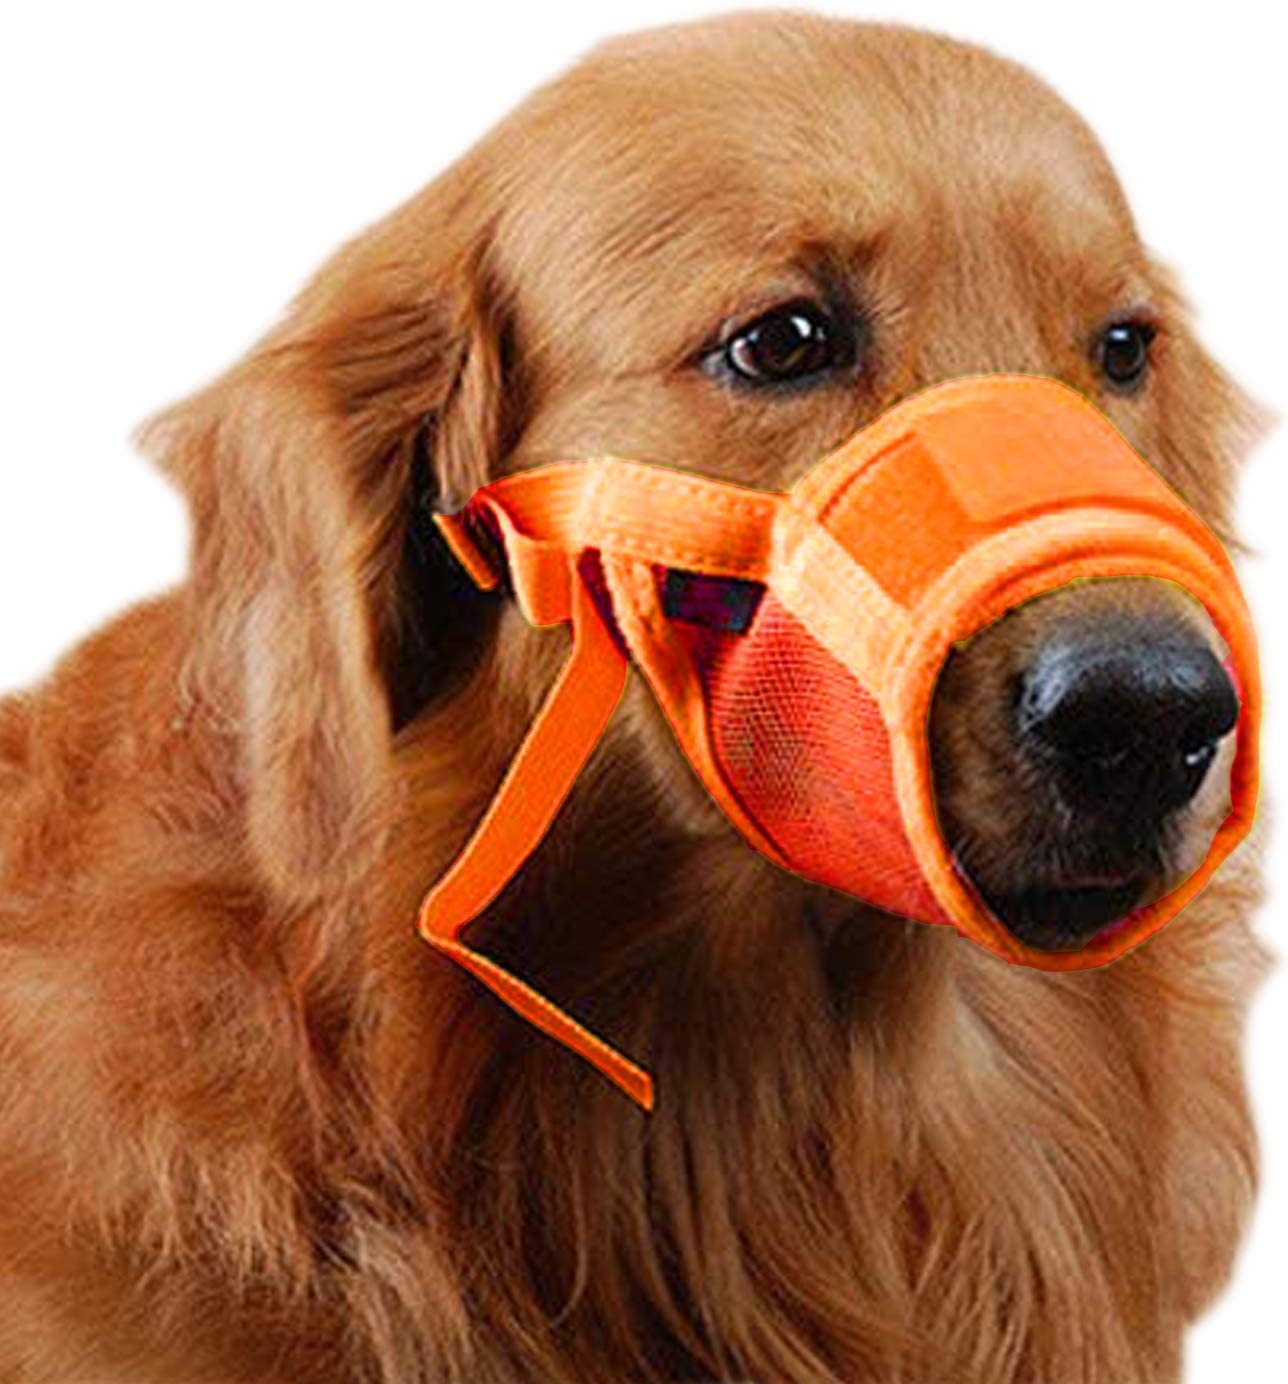 Dog Muzzle for Sale SALE% OFF Manufacturer regenerated product Barking Chewing Nylon Biting Trai Breathable Mesh